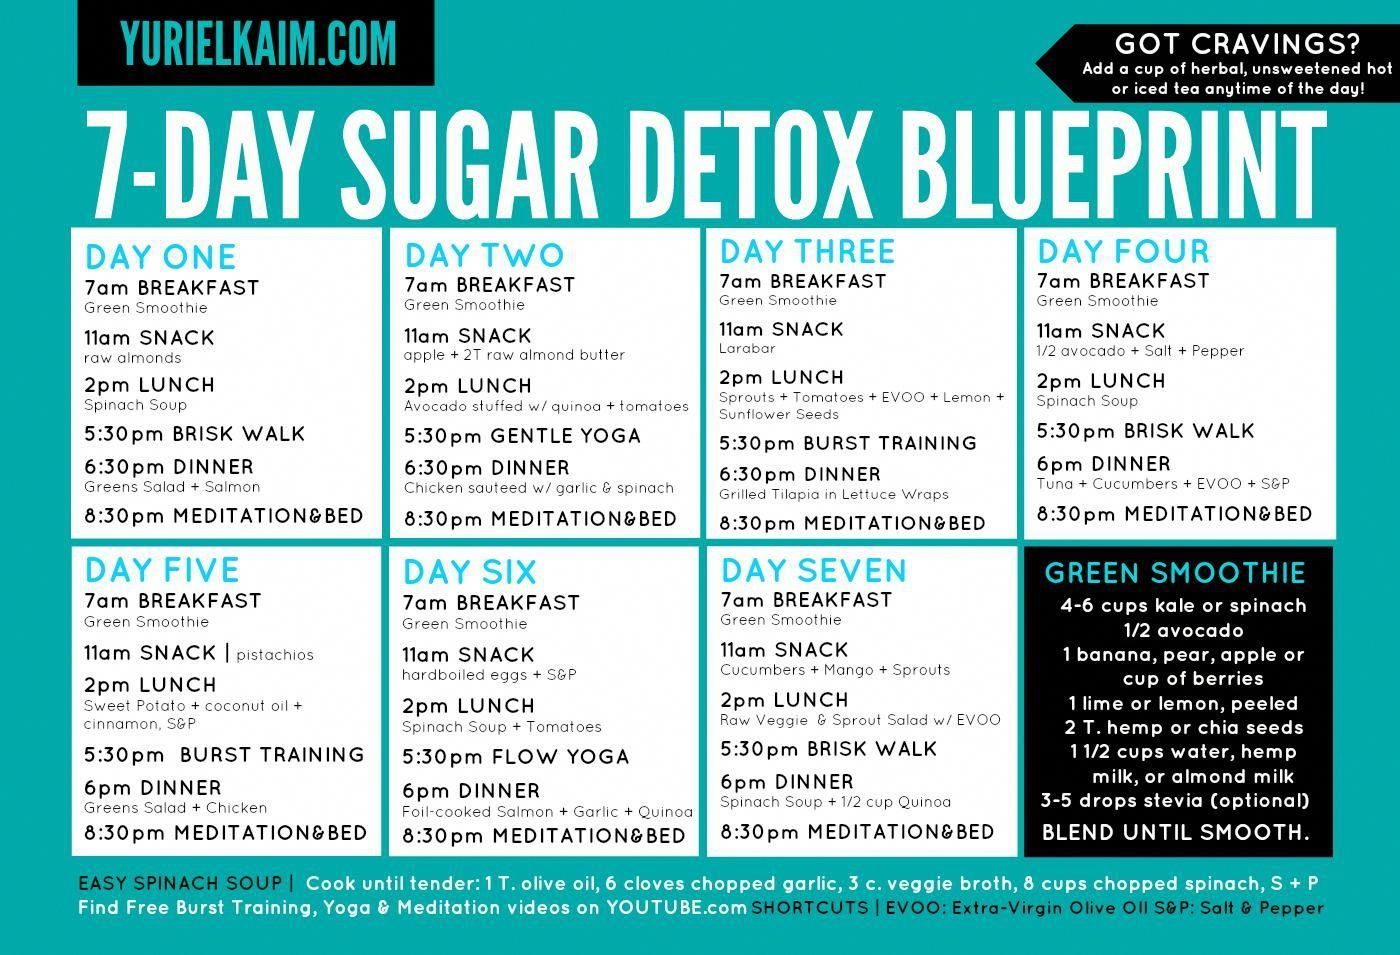 Sugar Detox Plan: A 10-Step Blueprint for Quitting Sugar | Yuri Elkaim #sugardetoxplan